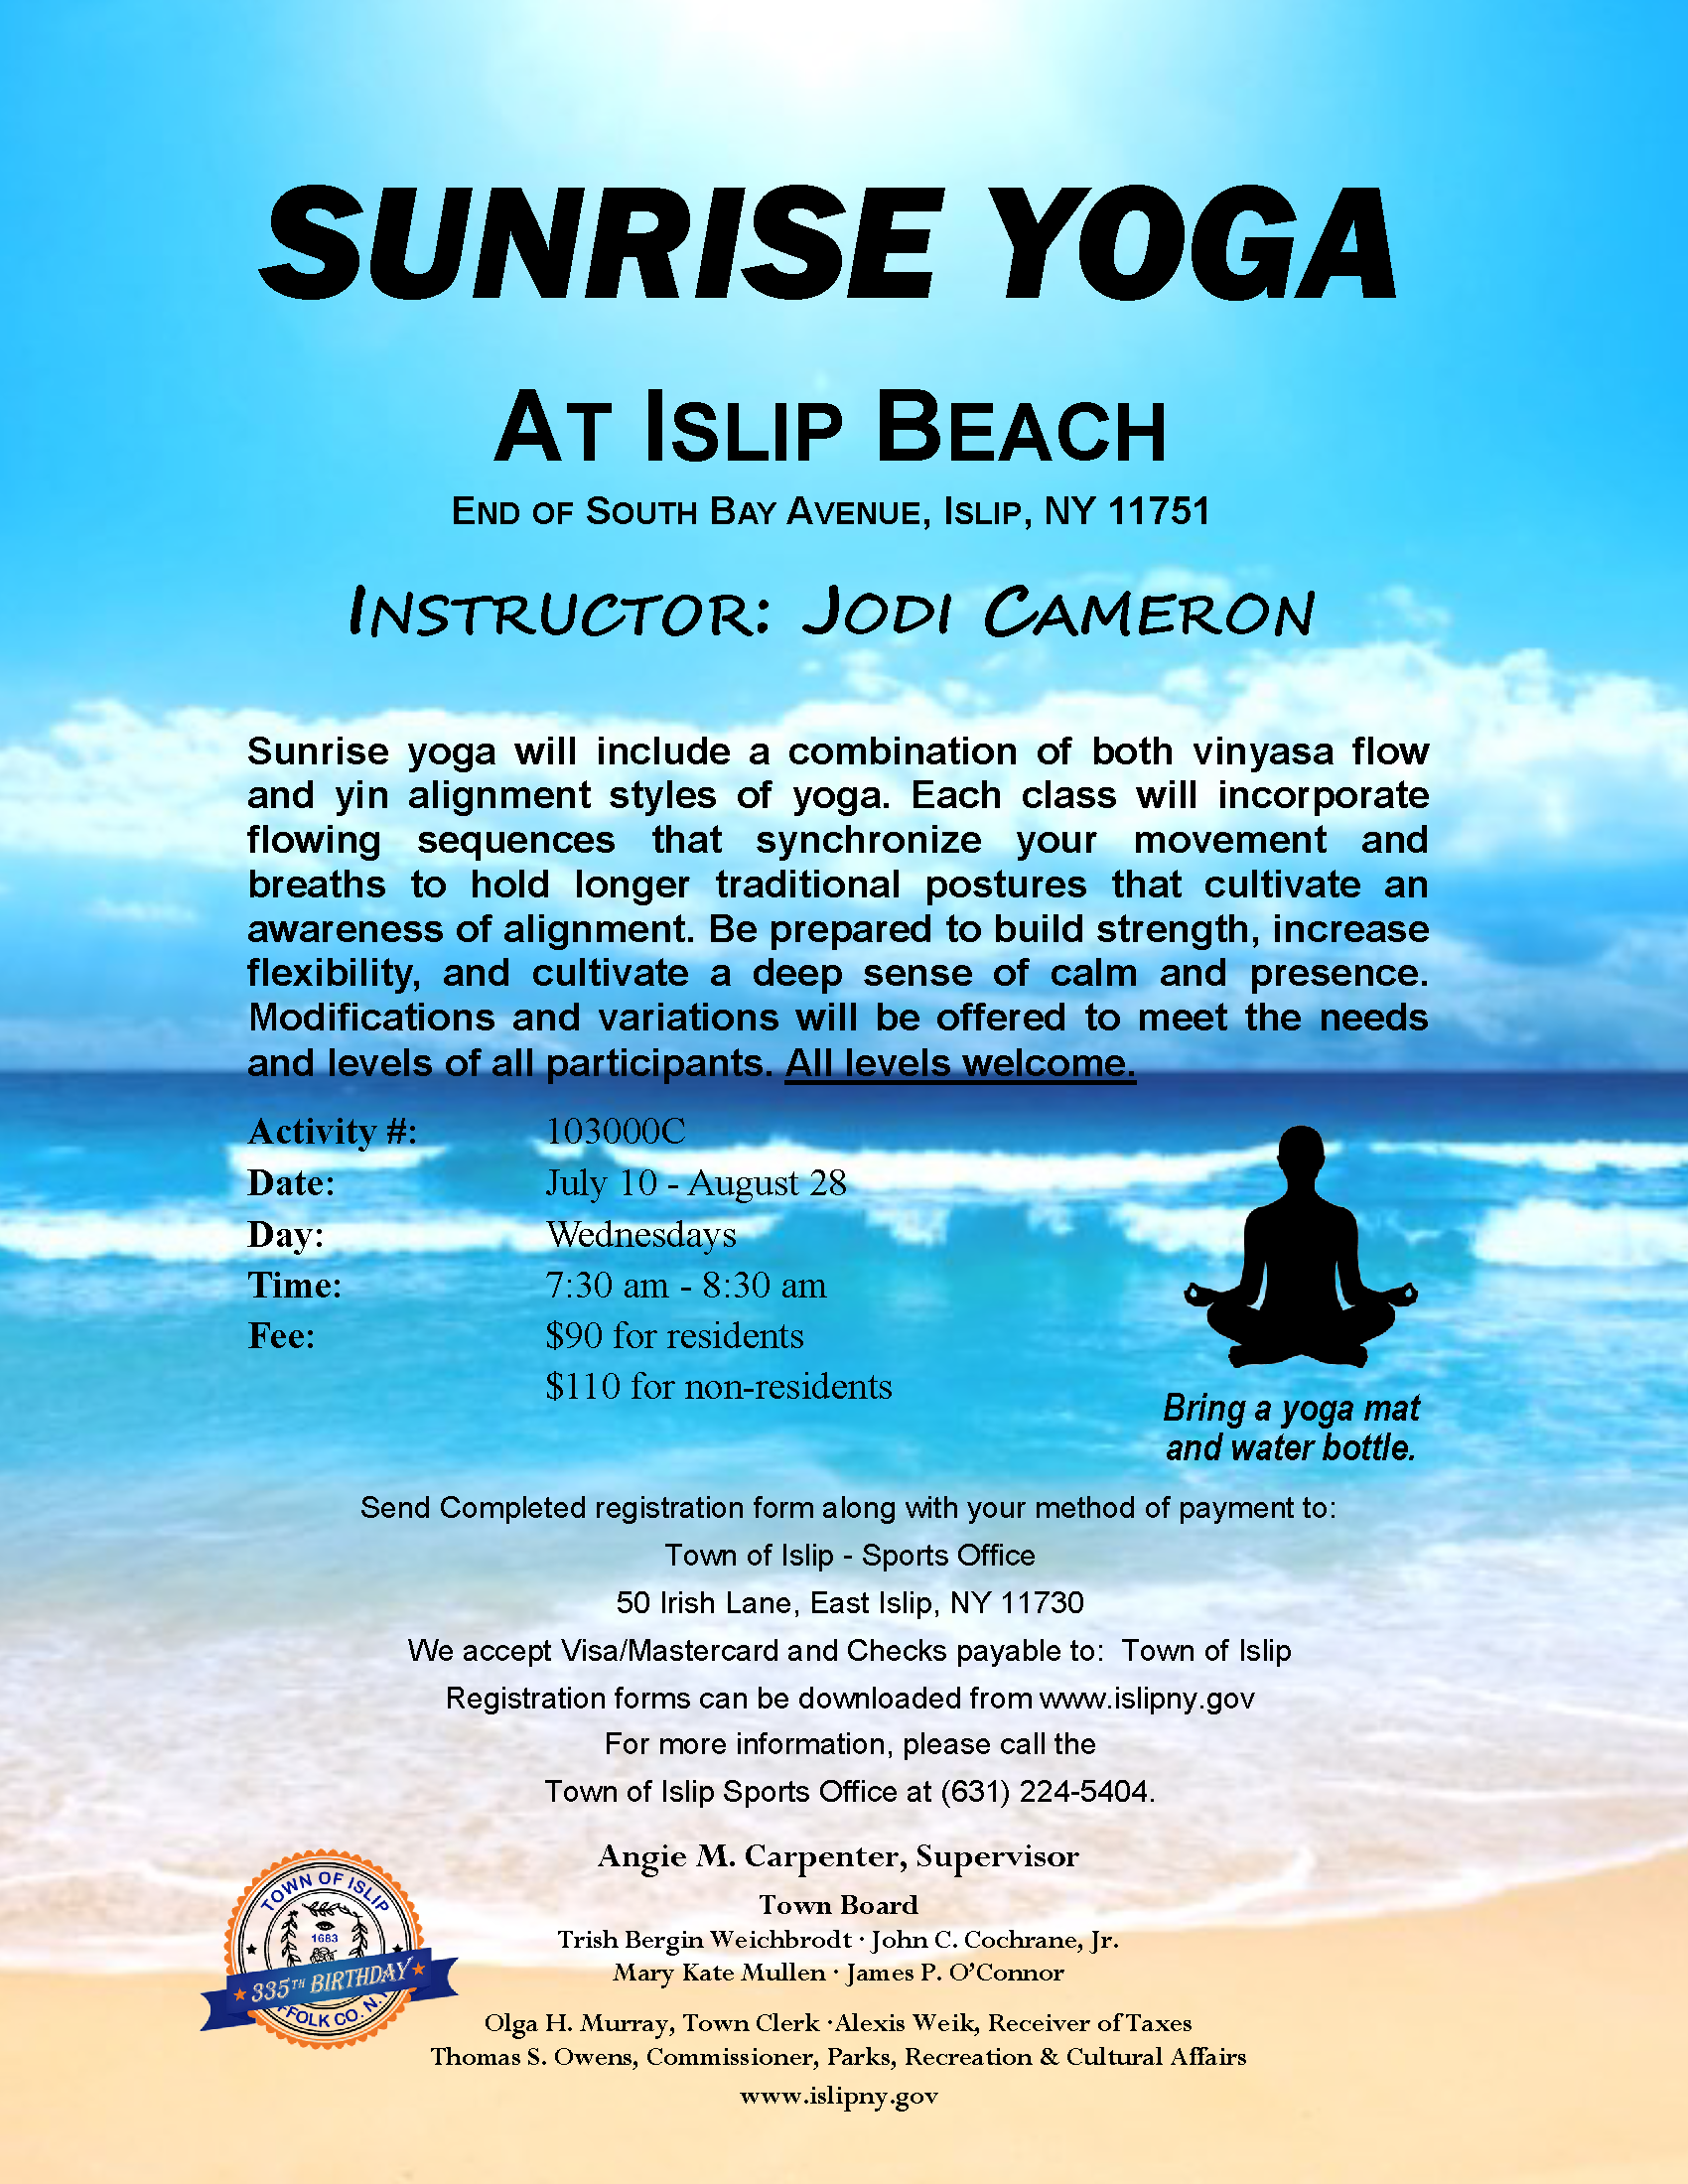 Sunrise Yoga Classes flyer, call (631) 224-5404 for more information.